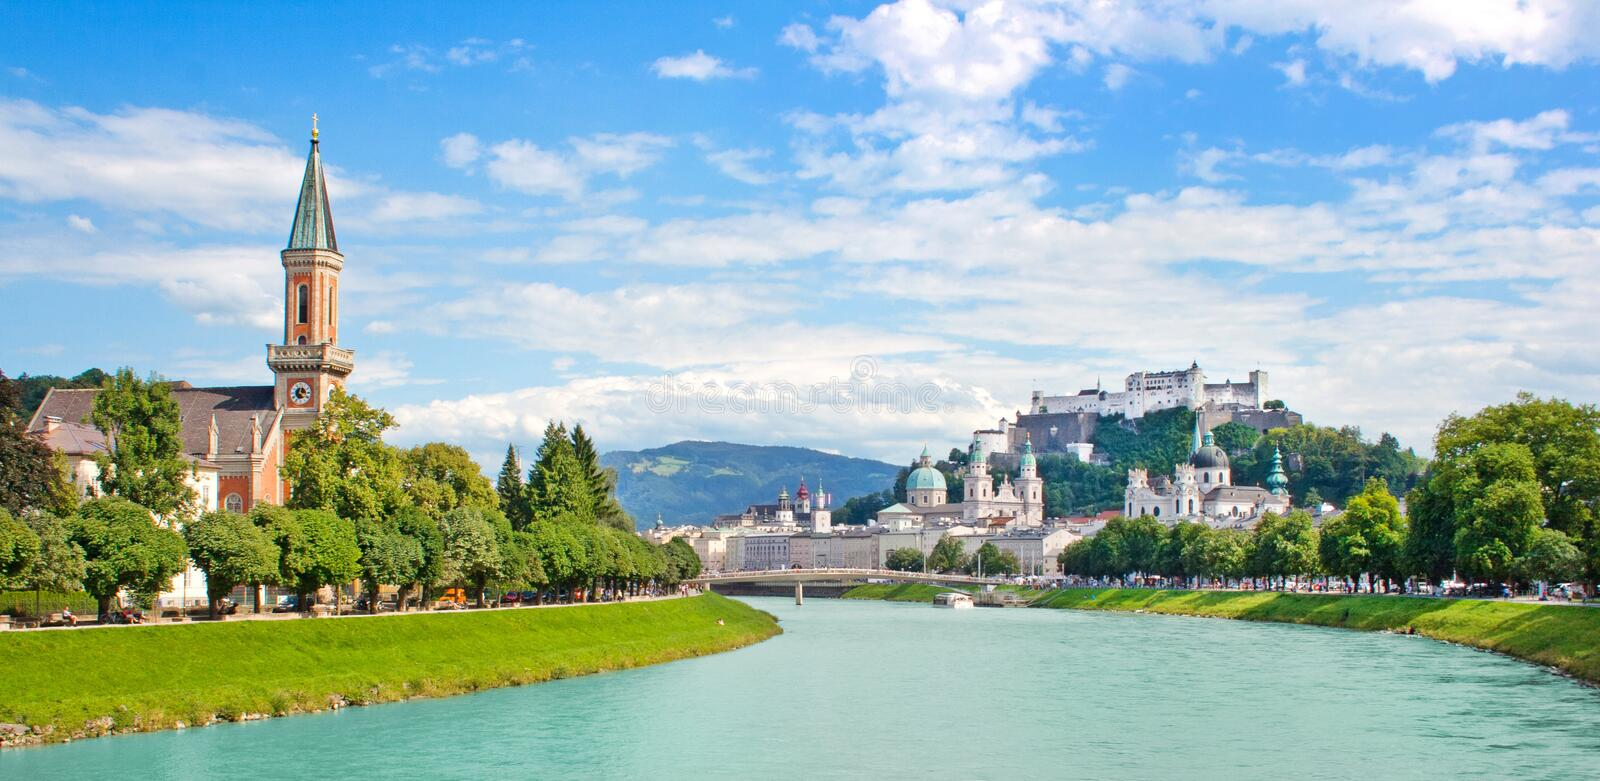 Download Salzburg Skyline With Festung Hohensalzburg And River Salzach, Salzburger Land, Austria Stock Photo - Image of idyllic, hohensalzburg: 31375148